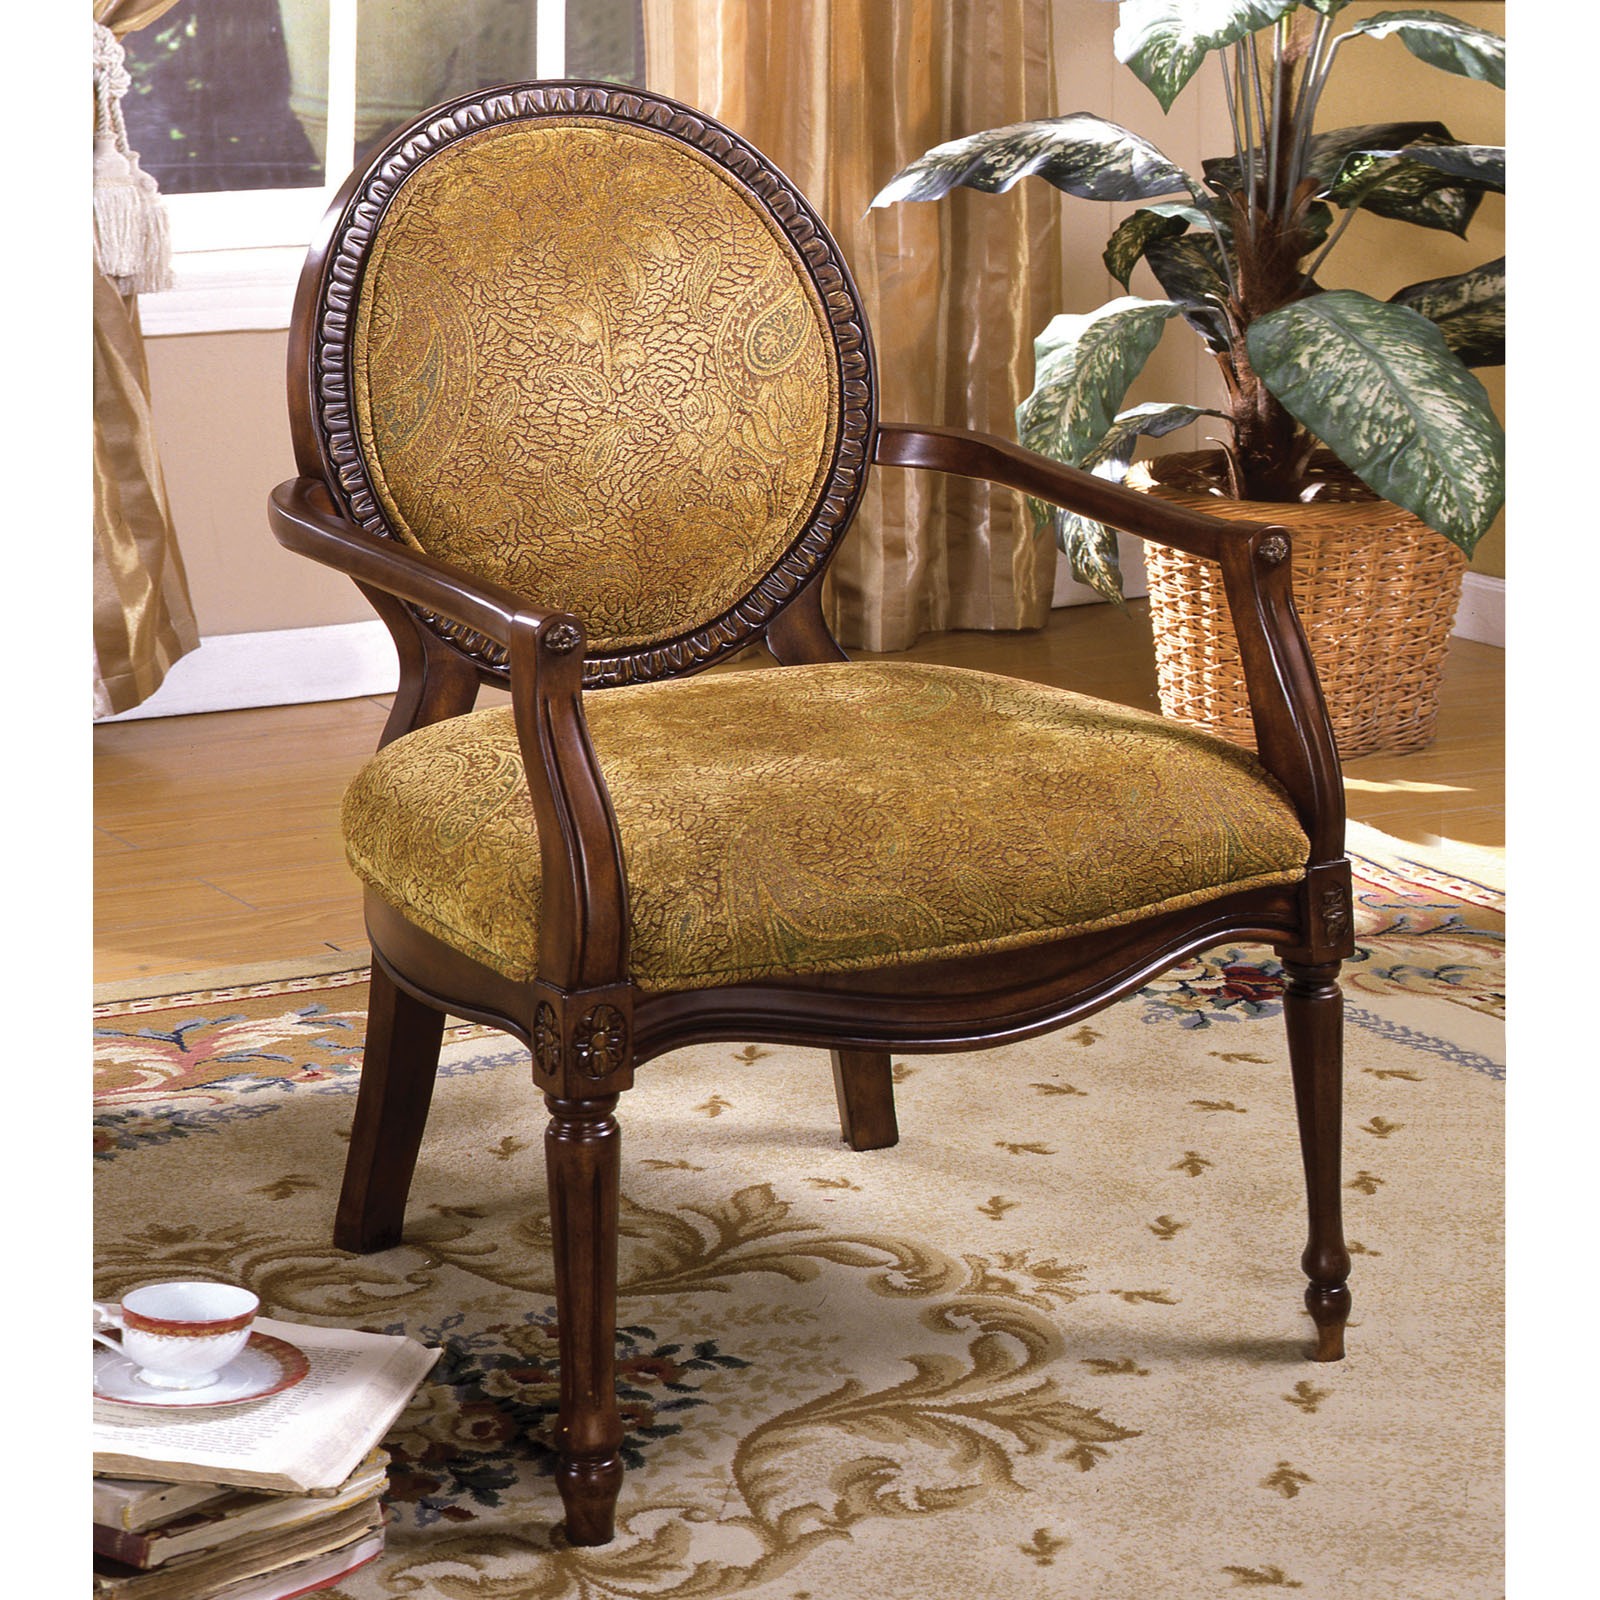 Furniture Of America Valer Traditional Style Fabric Padded Accent Chair |  Hayneedle